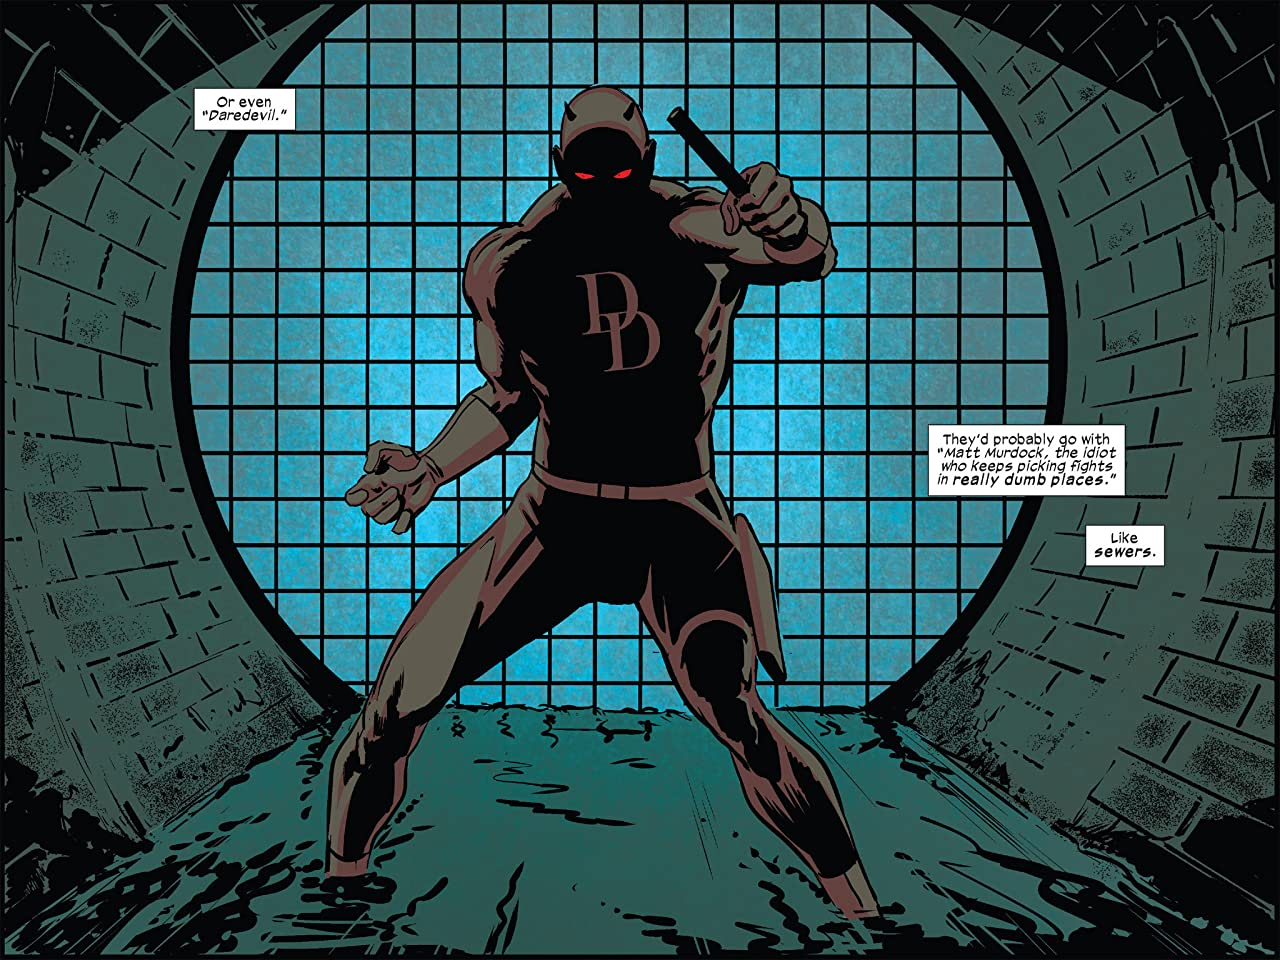 Daredevil: Road Warrior Infinite Comic #1 (of 4)